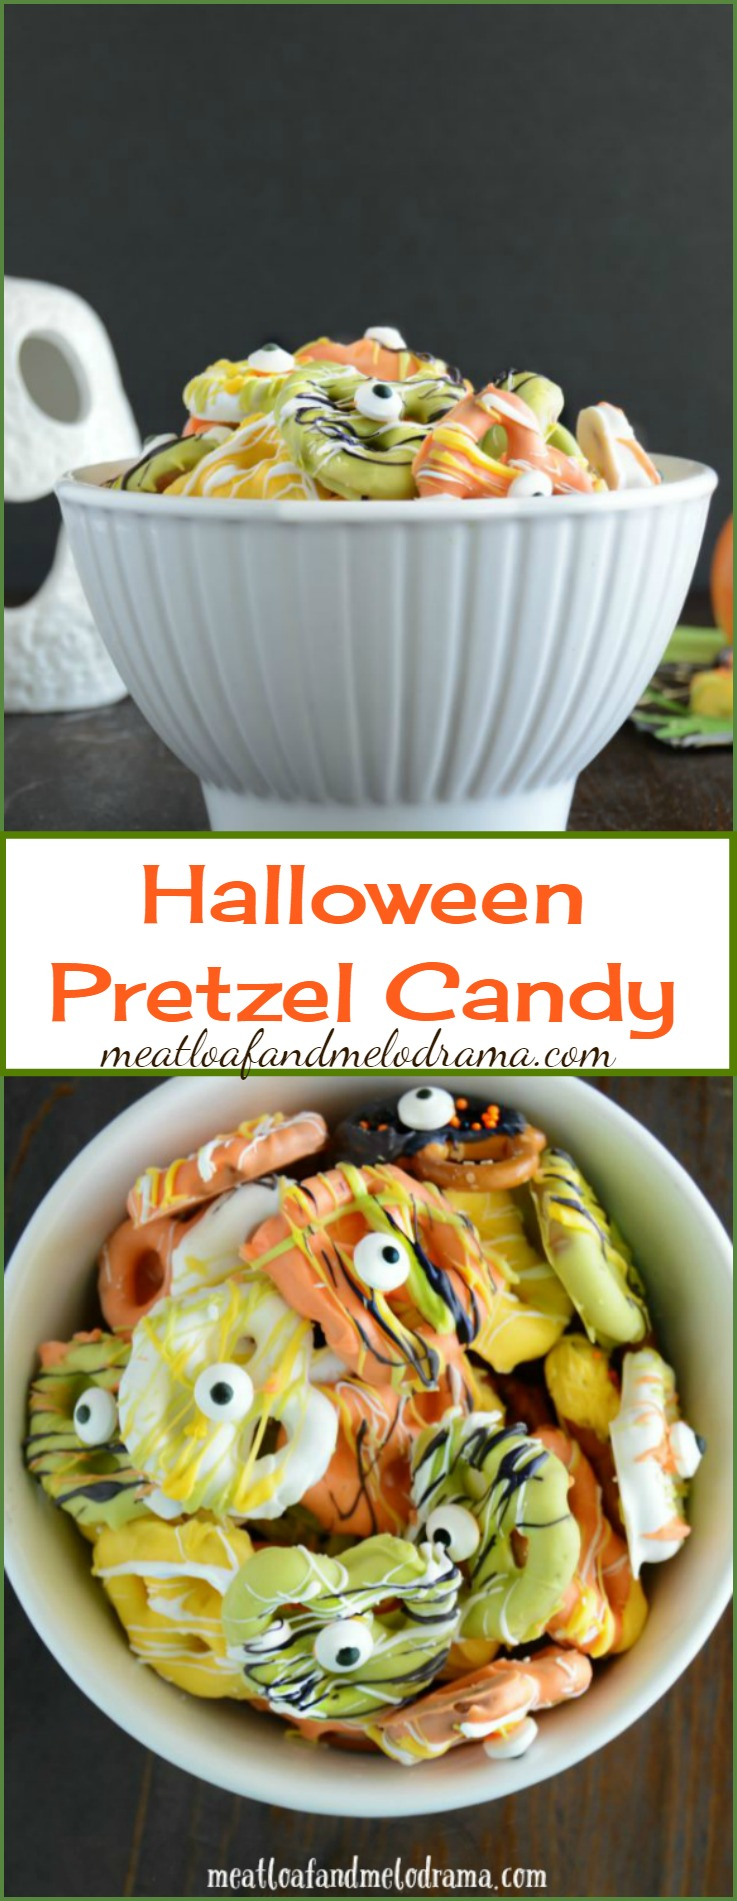 Easy Candy Coated Halloween Pretzels